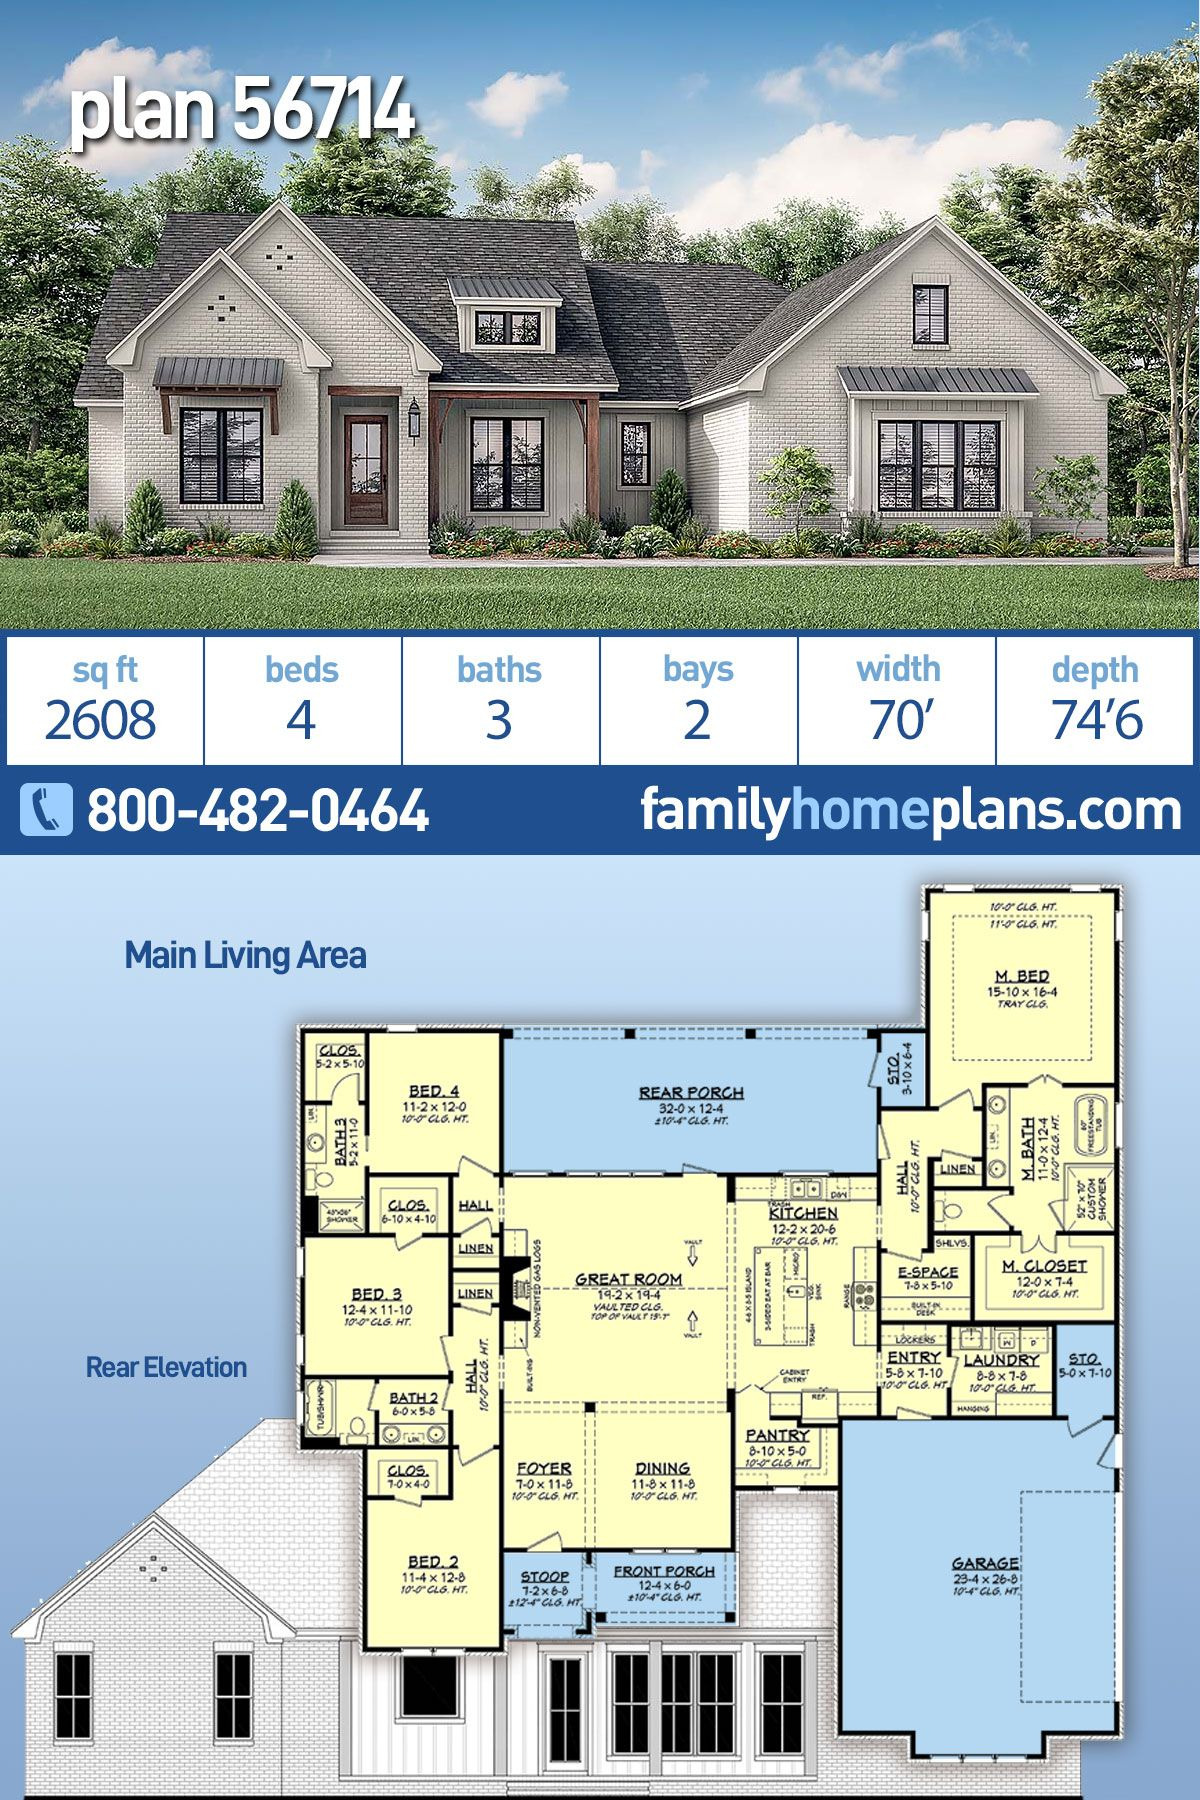 traditional style house plan with 4 bed 3 bath 2 car garage